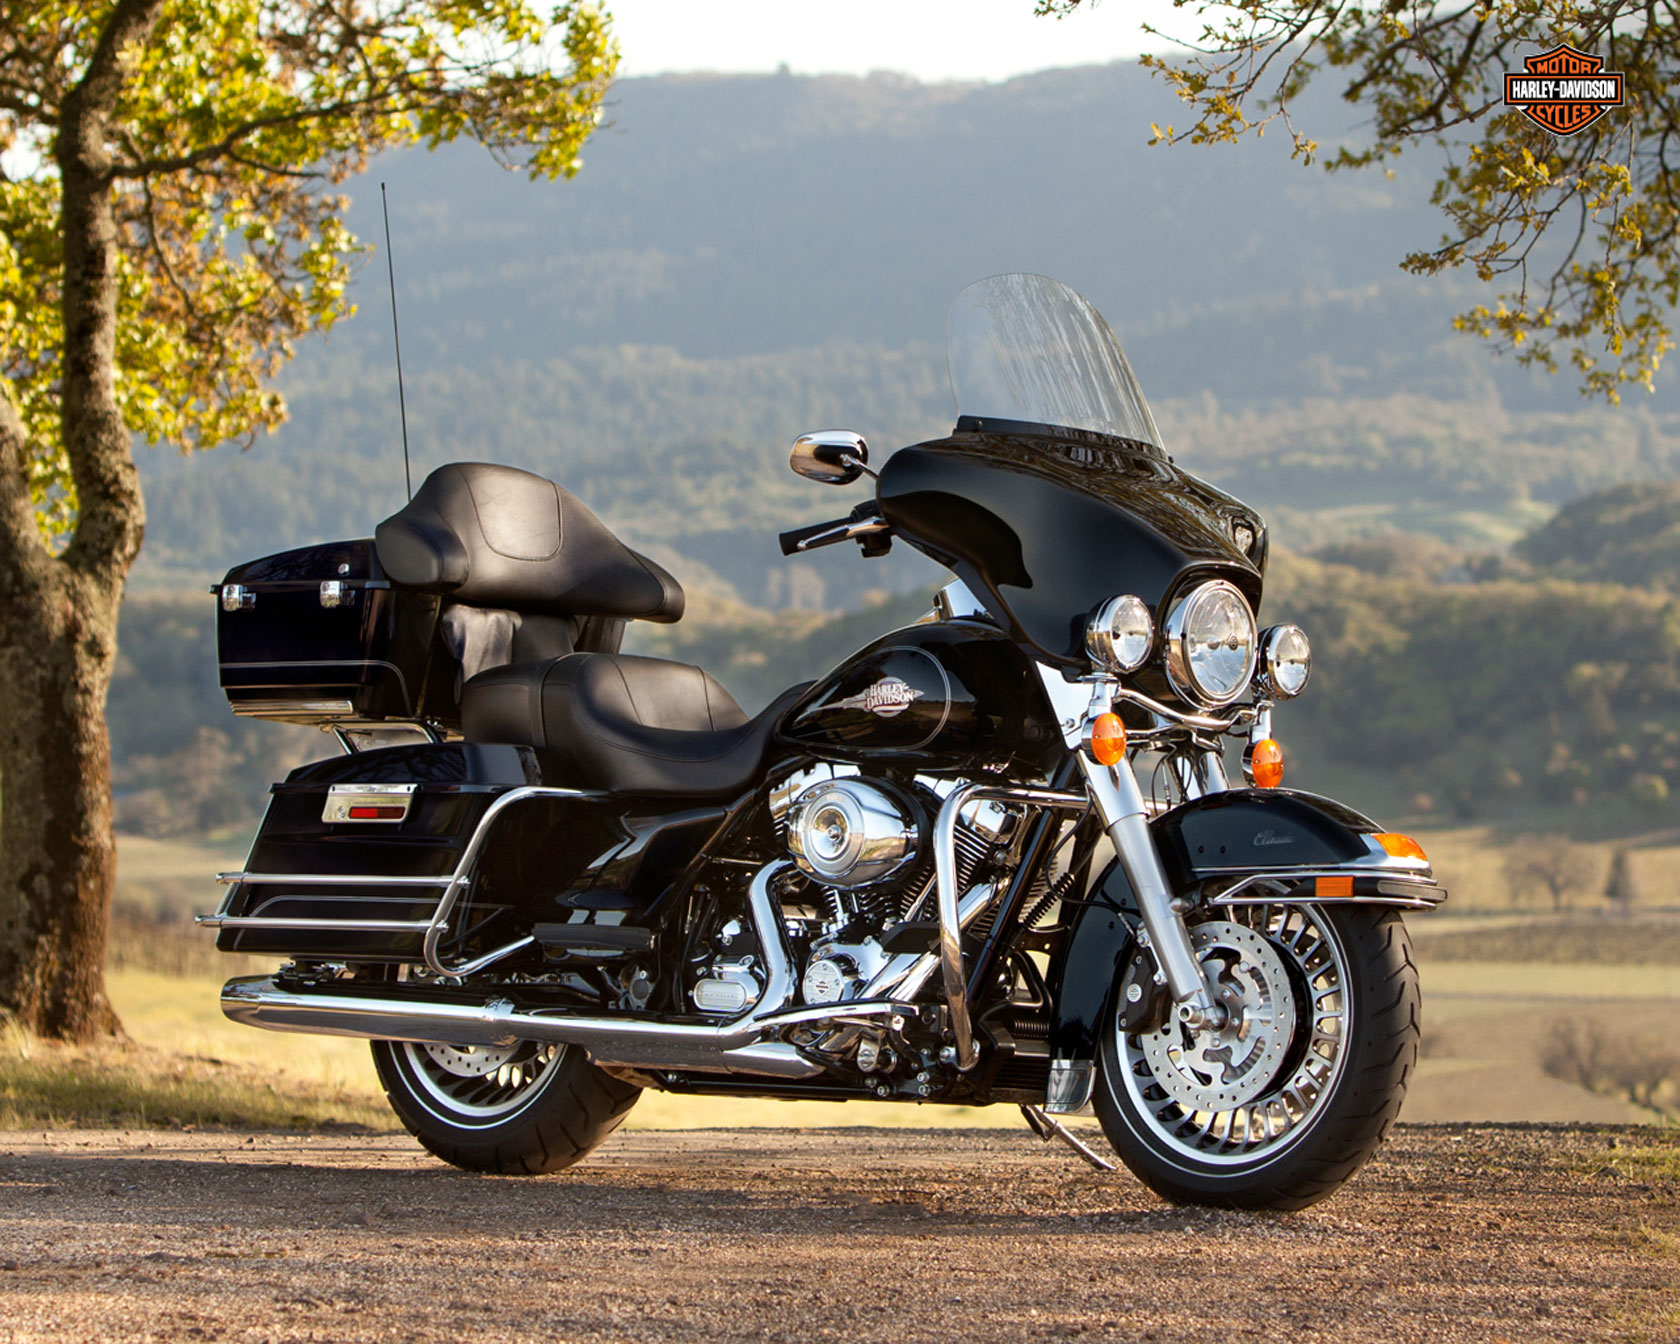 2012 harley davidson flhtcu electra glide ultra classic pics specs and information. Black Bedroom Furniture Sets. Home Design Ideas